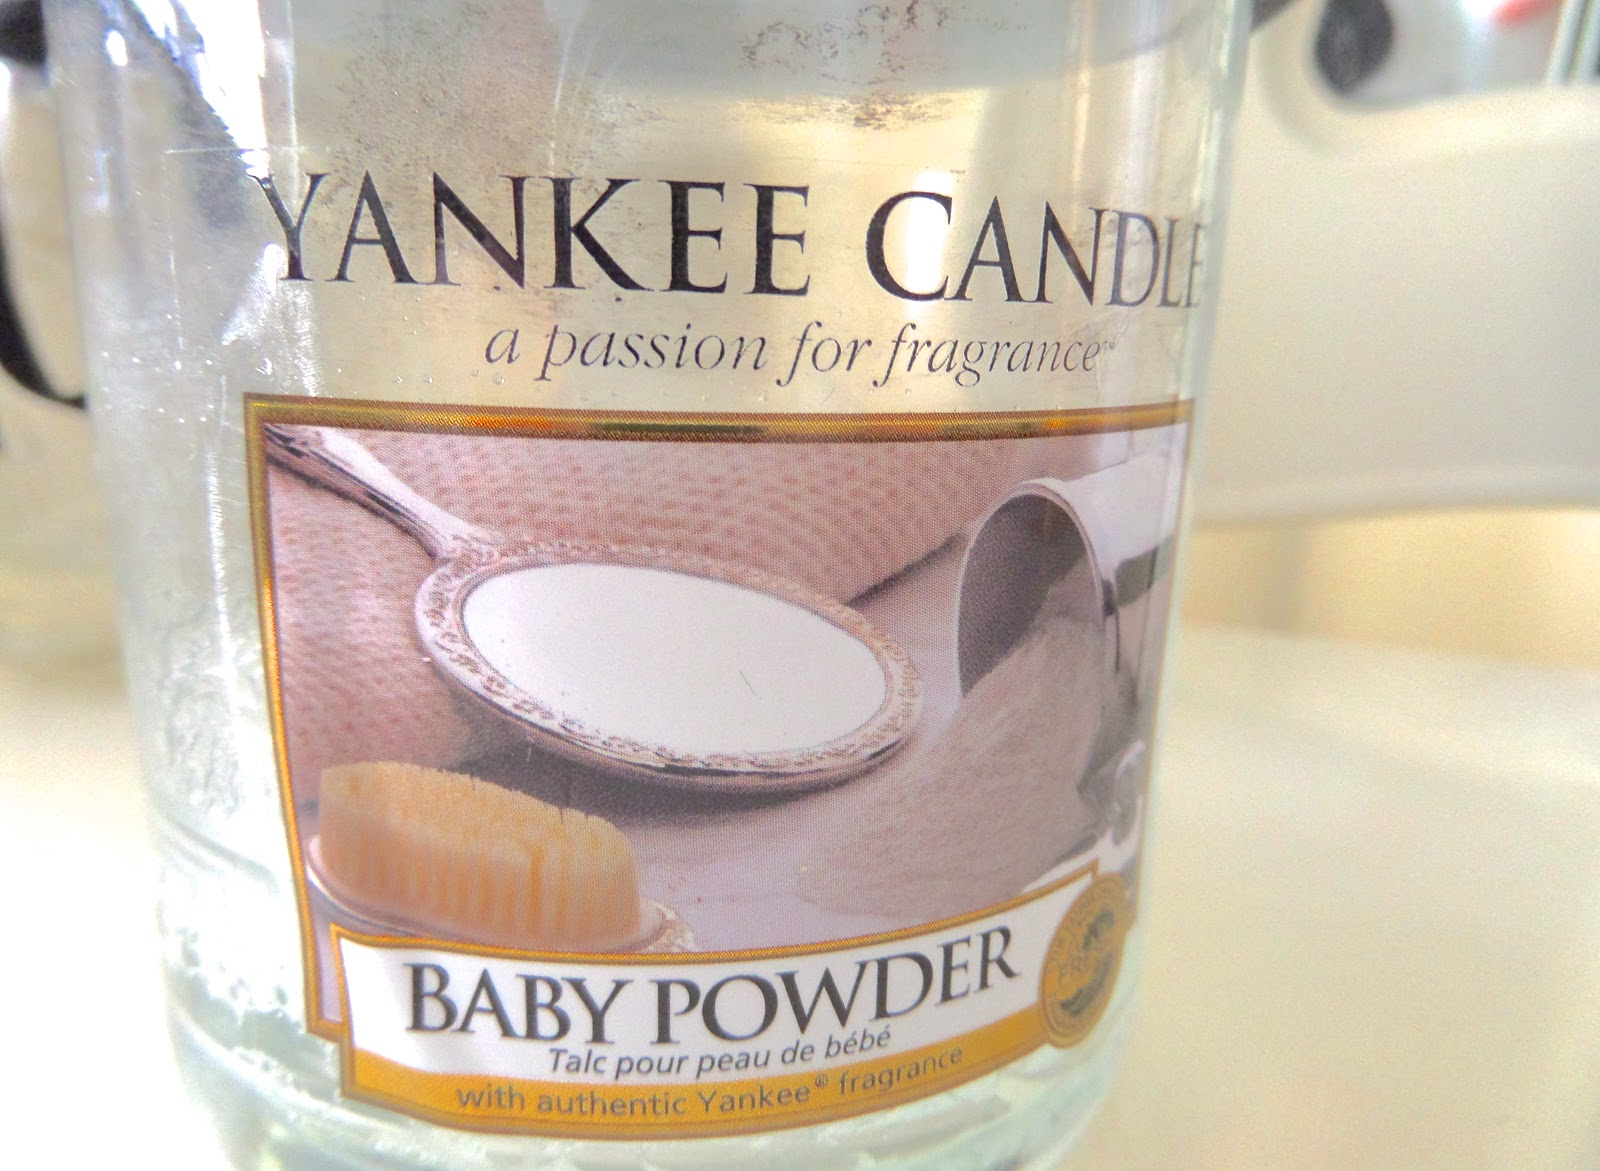 Yankee Candle Baby Powder